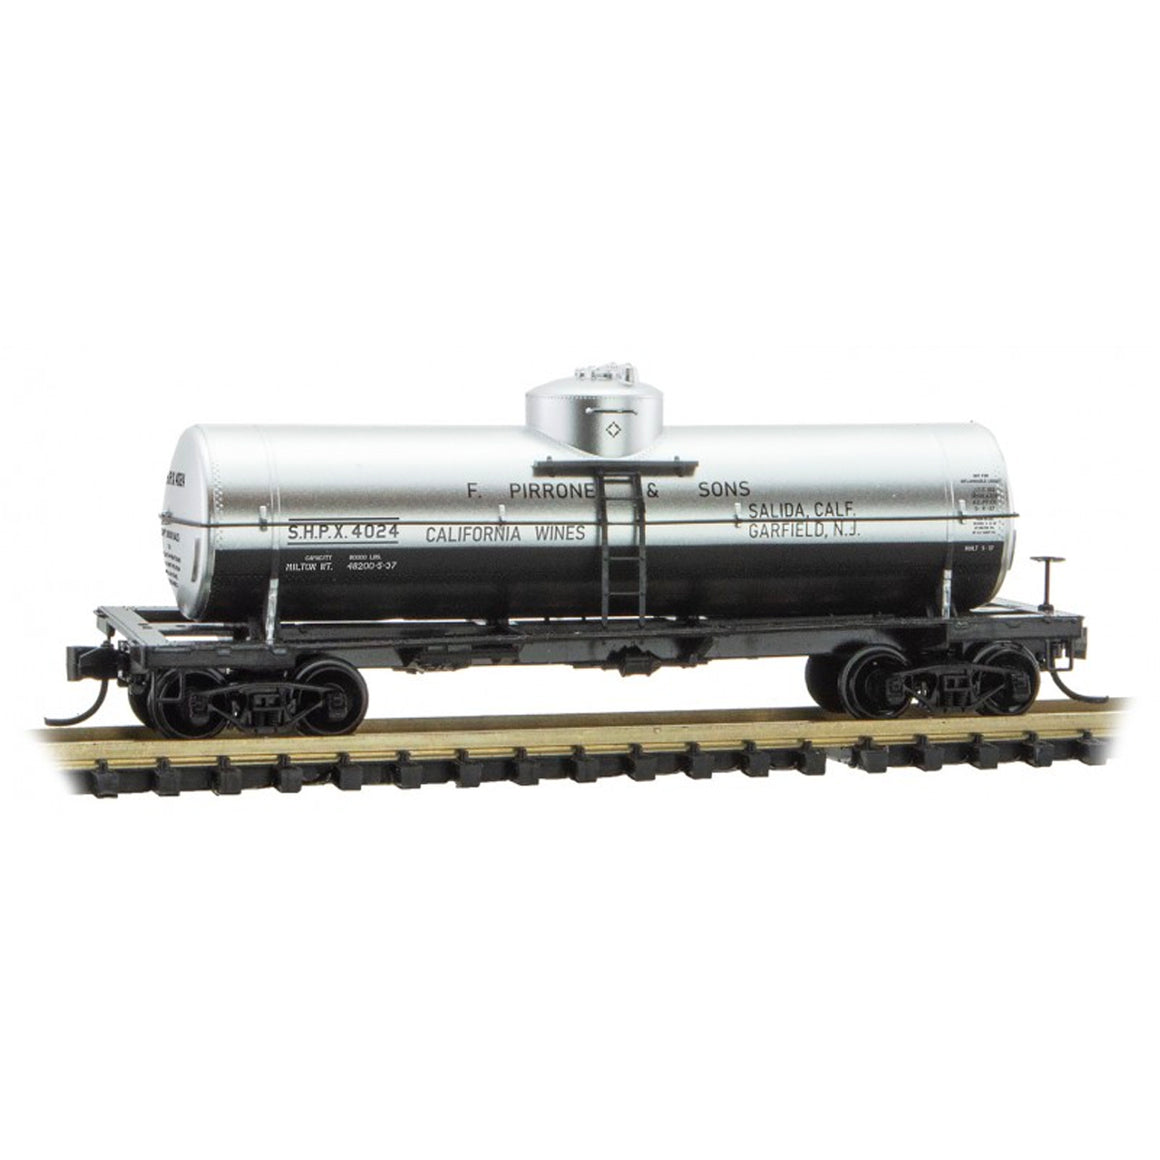 N Scale: 39' Single Dome Tank Car - SHPX 'F. Pirrone & Sons California Wines'